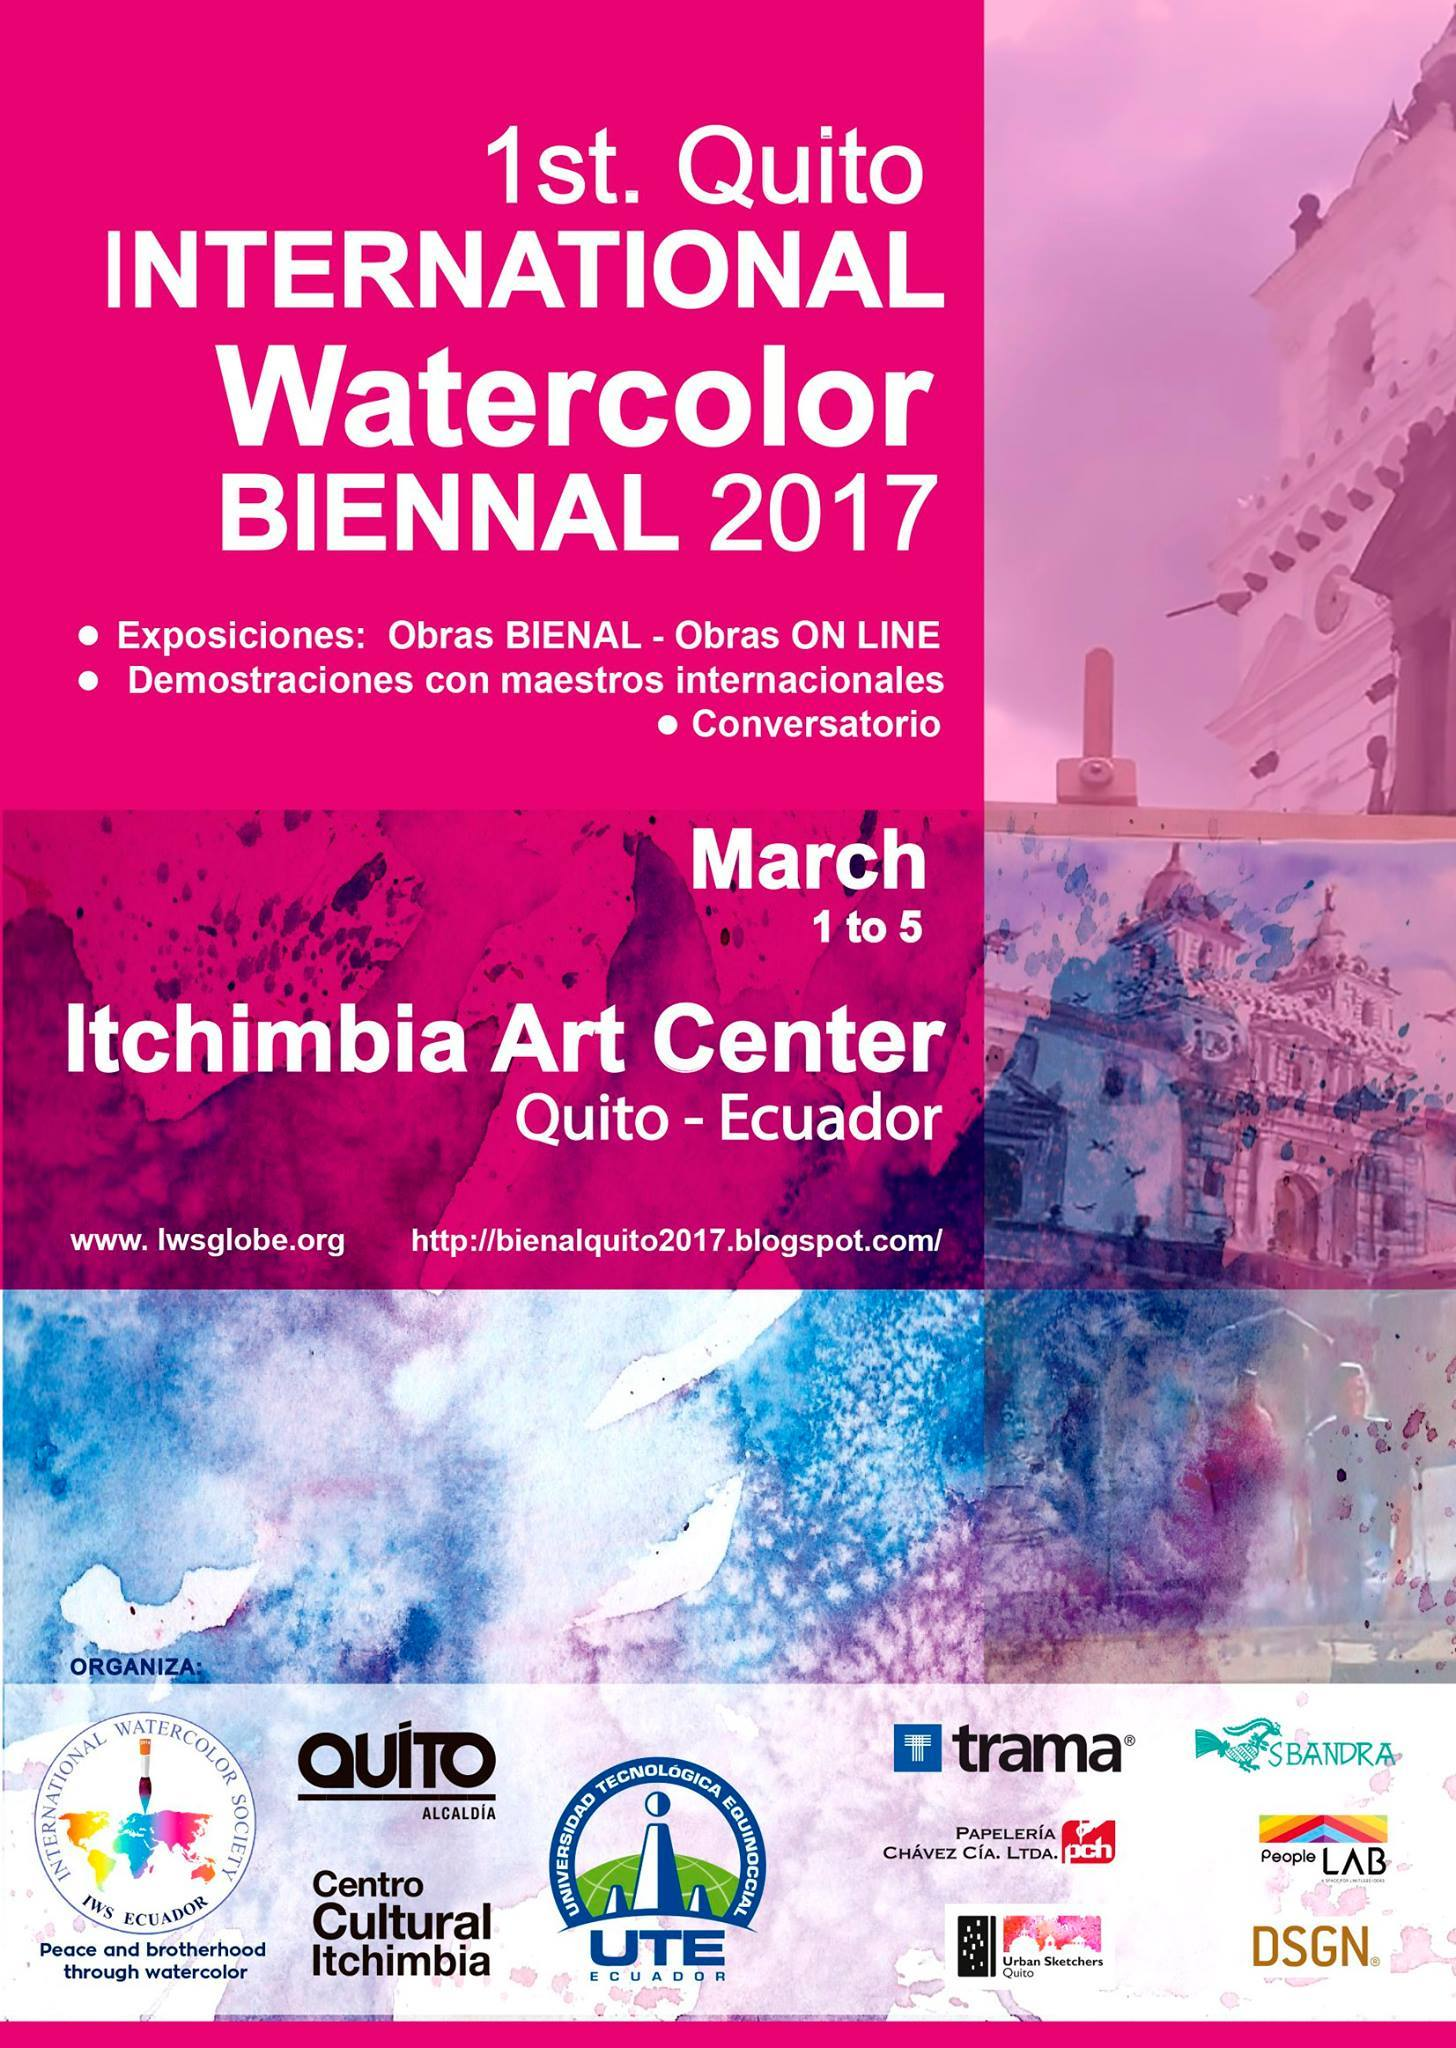 1st Quito International Watercolor Biennale 2017